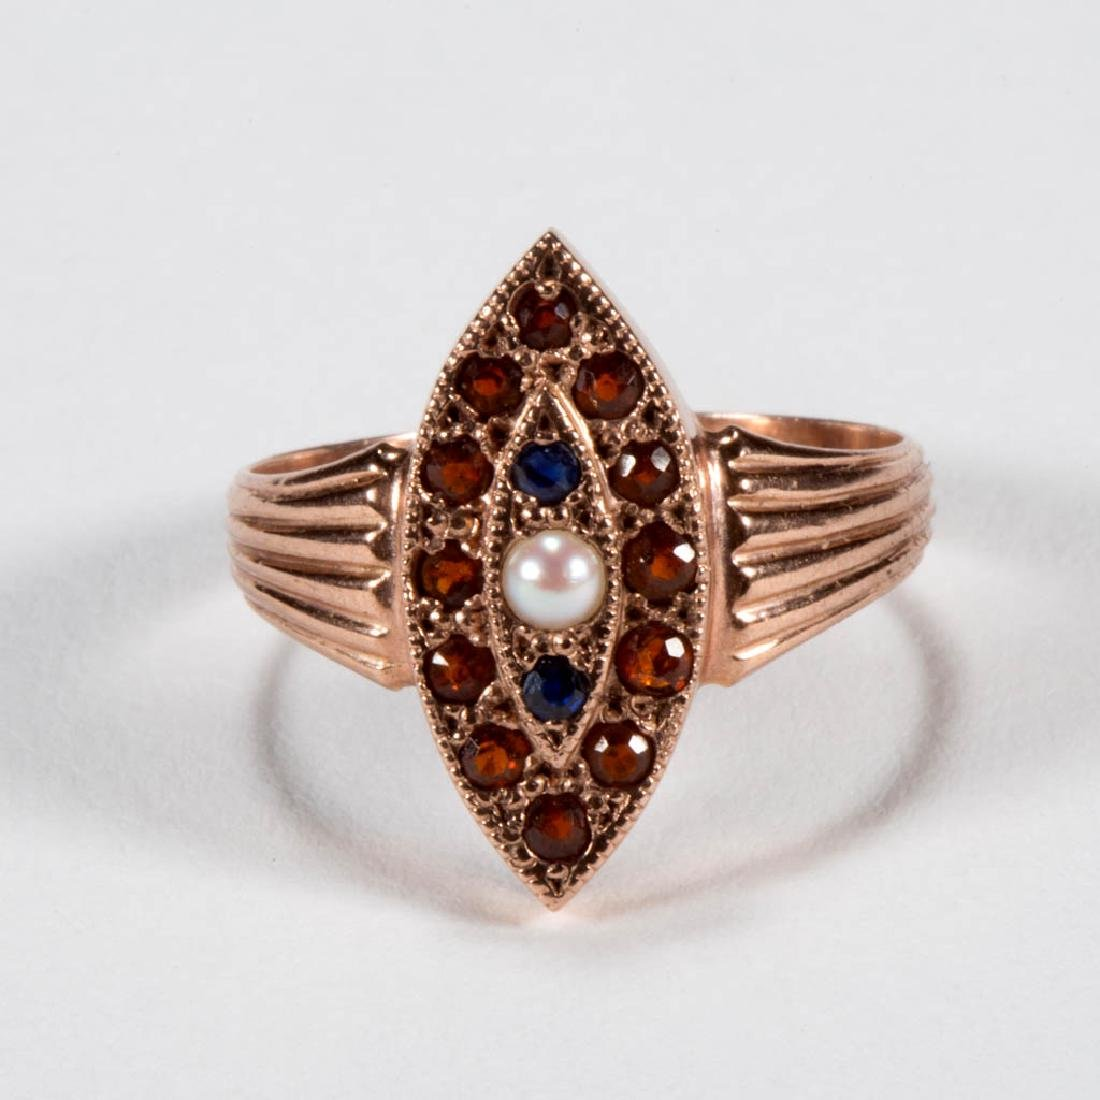 EDWARDIAN 9K GOLD AND SPESSARTITE GARNET LADY'S RING